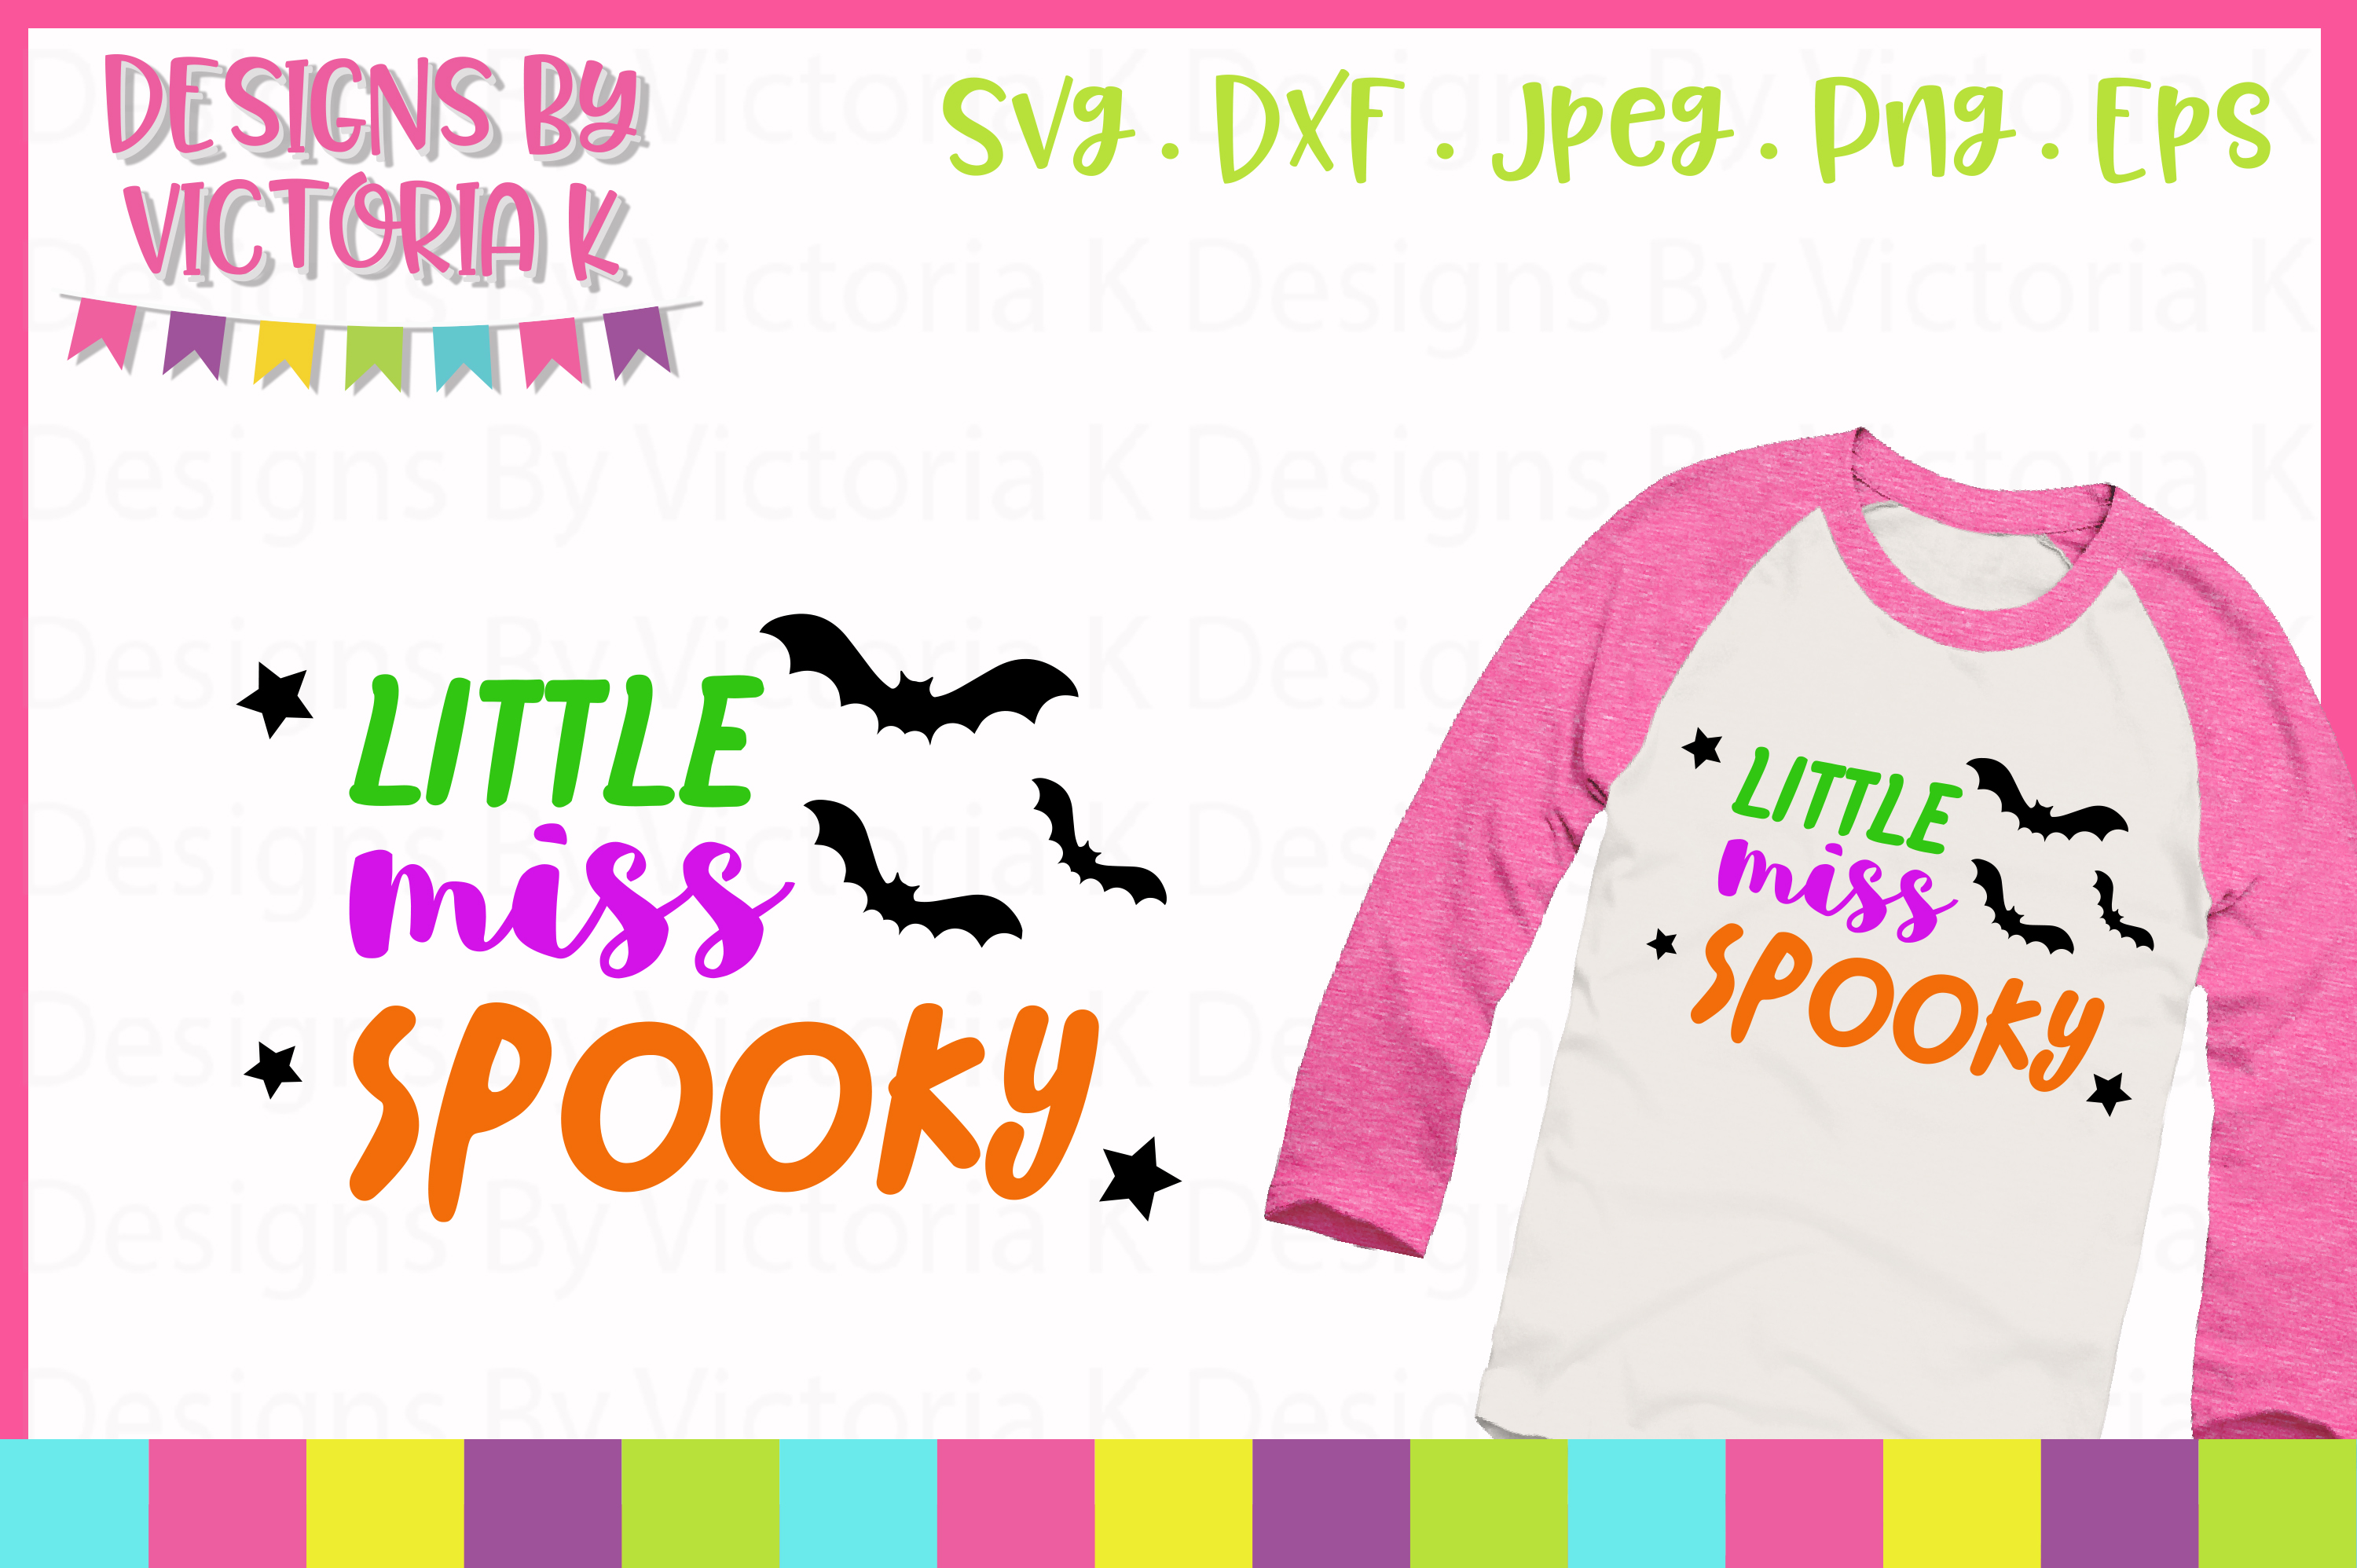 Download Free Little Miss Spooky Svg Graphic By Designs By Victoria K for Cricut Explore, Silhouette and other cutting machines.